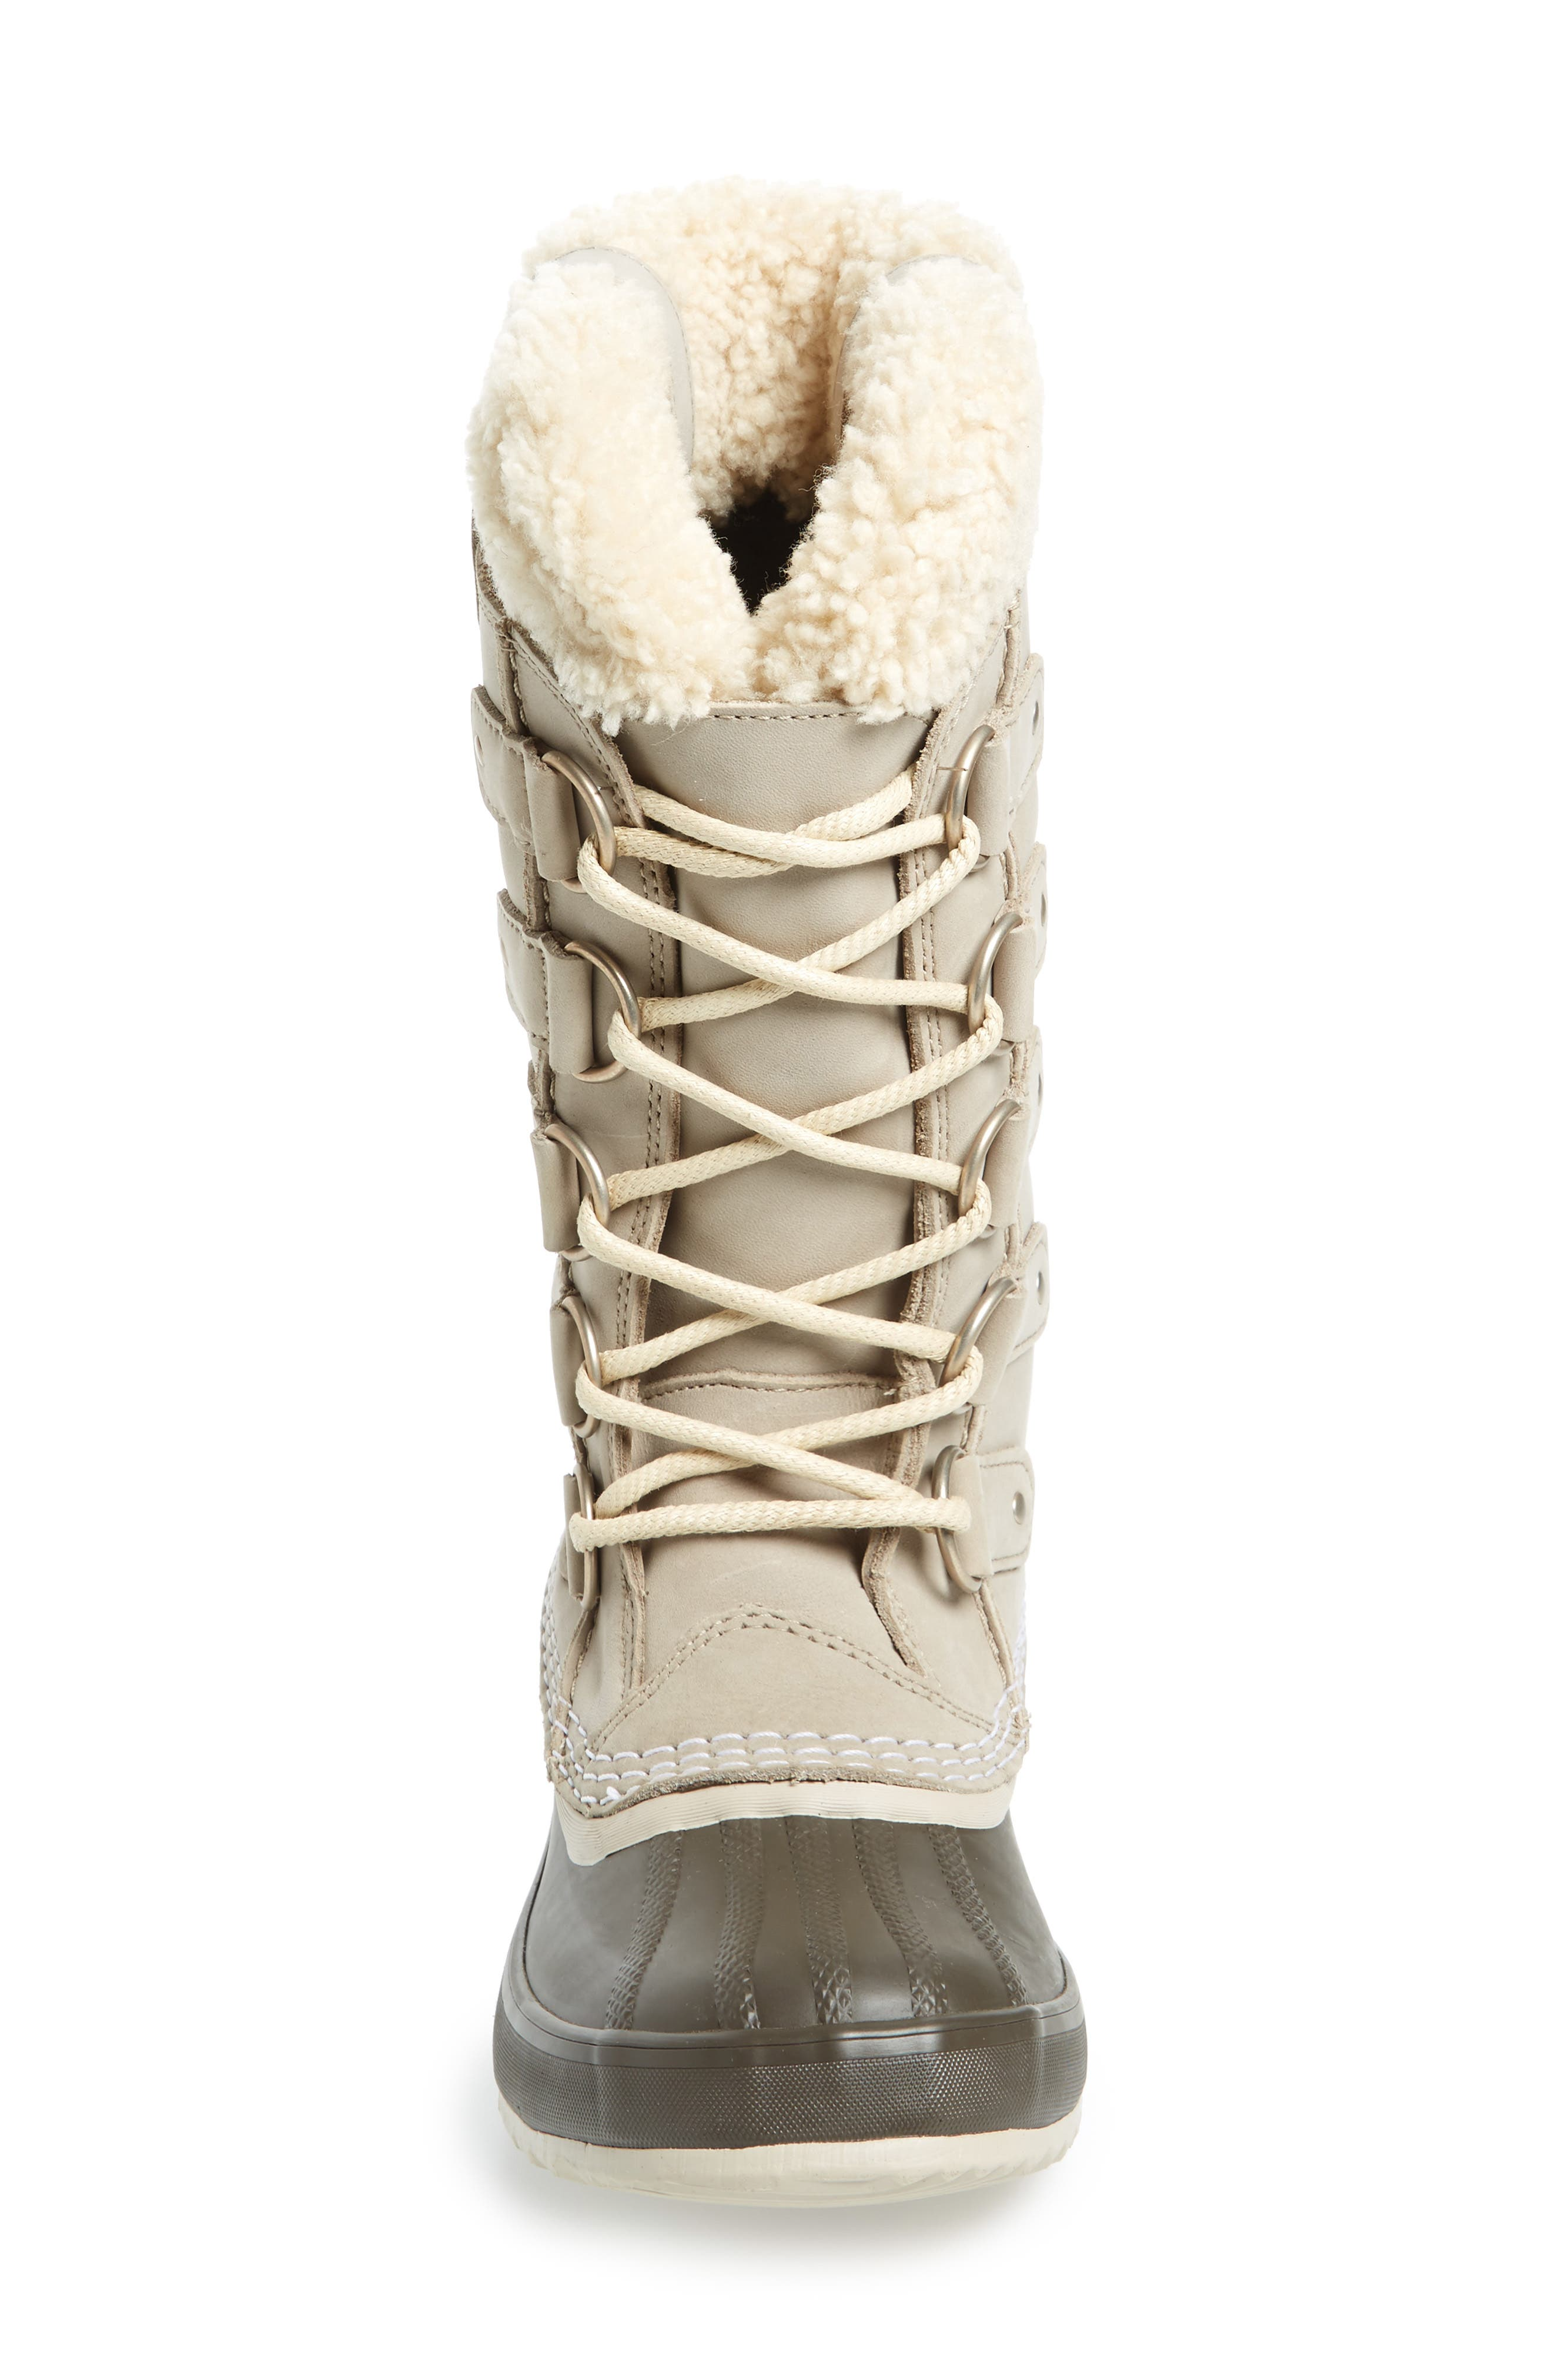 Joan of Arctic<sup>™</sup> Lux Waterproof Winter Boot with Genuine  Shearling Cuff,                             Alternate thumbnail 4, color,                             271